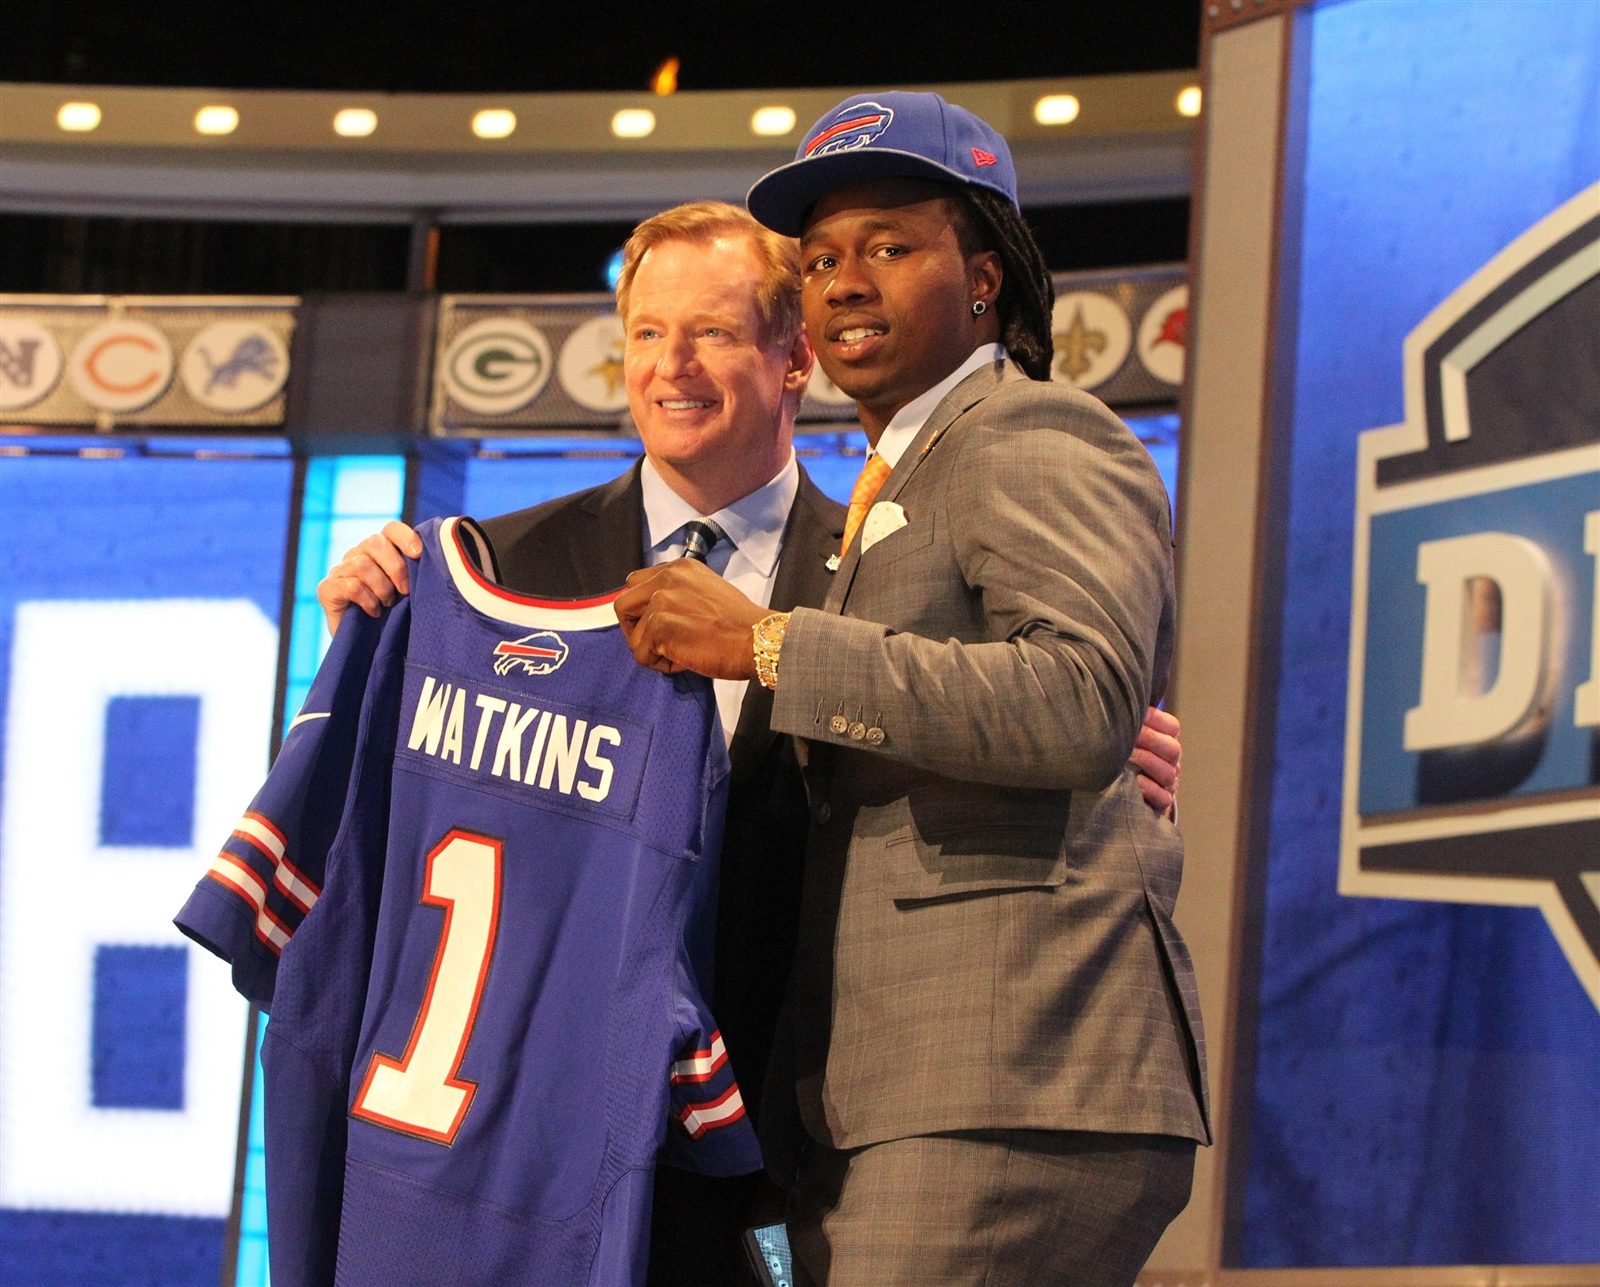 Sammy Watkins goes fourth overall in the draft and gets a photo op with Commissioner Roger Goodell.